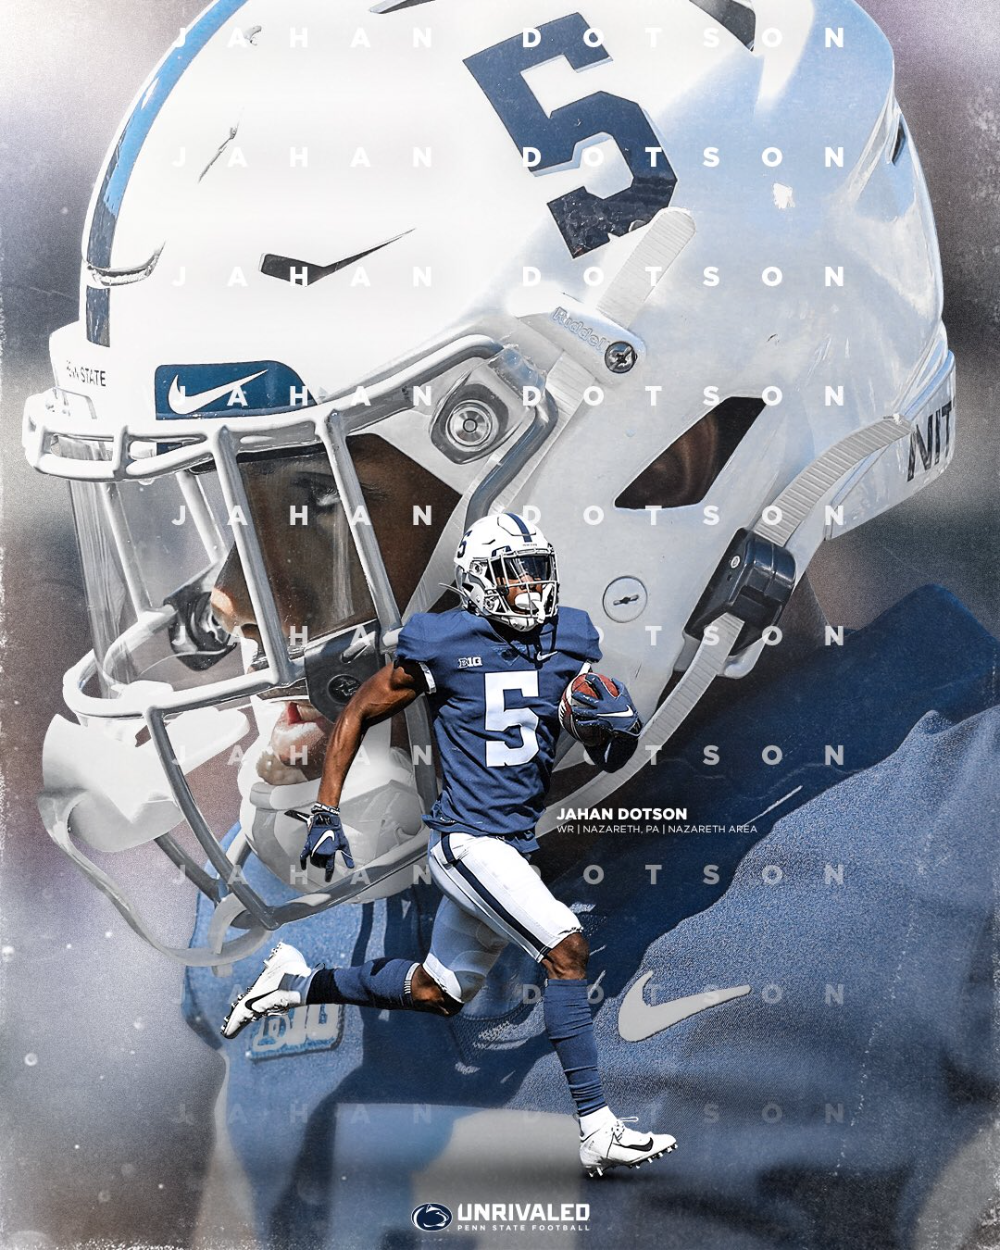 Penn State Football On Twitter In 2020 Penn State Football Sports Graphic Design Penn State Football Players